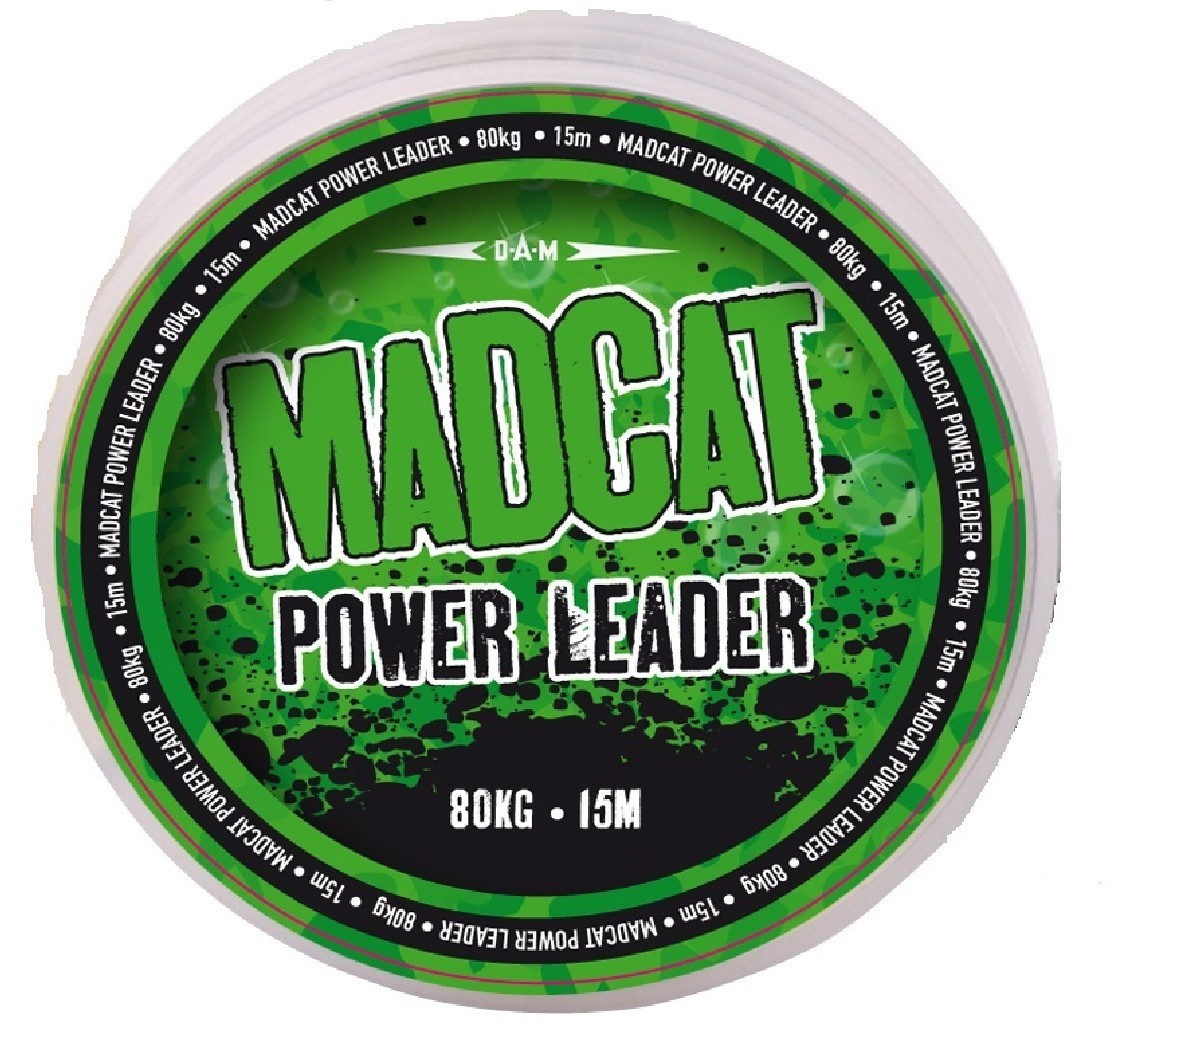 Madcat Power Leader 15 m